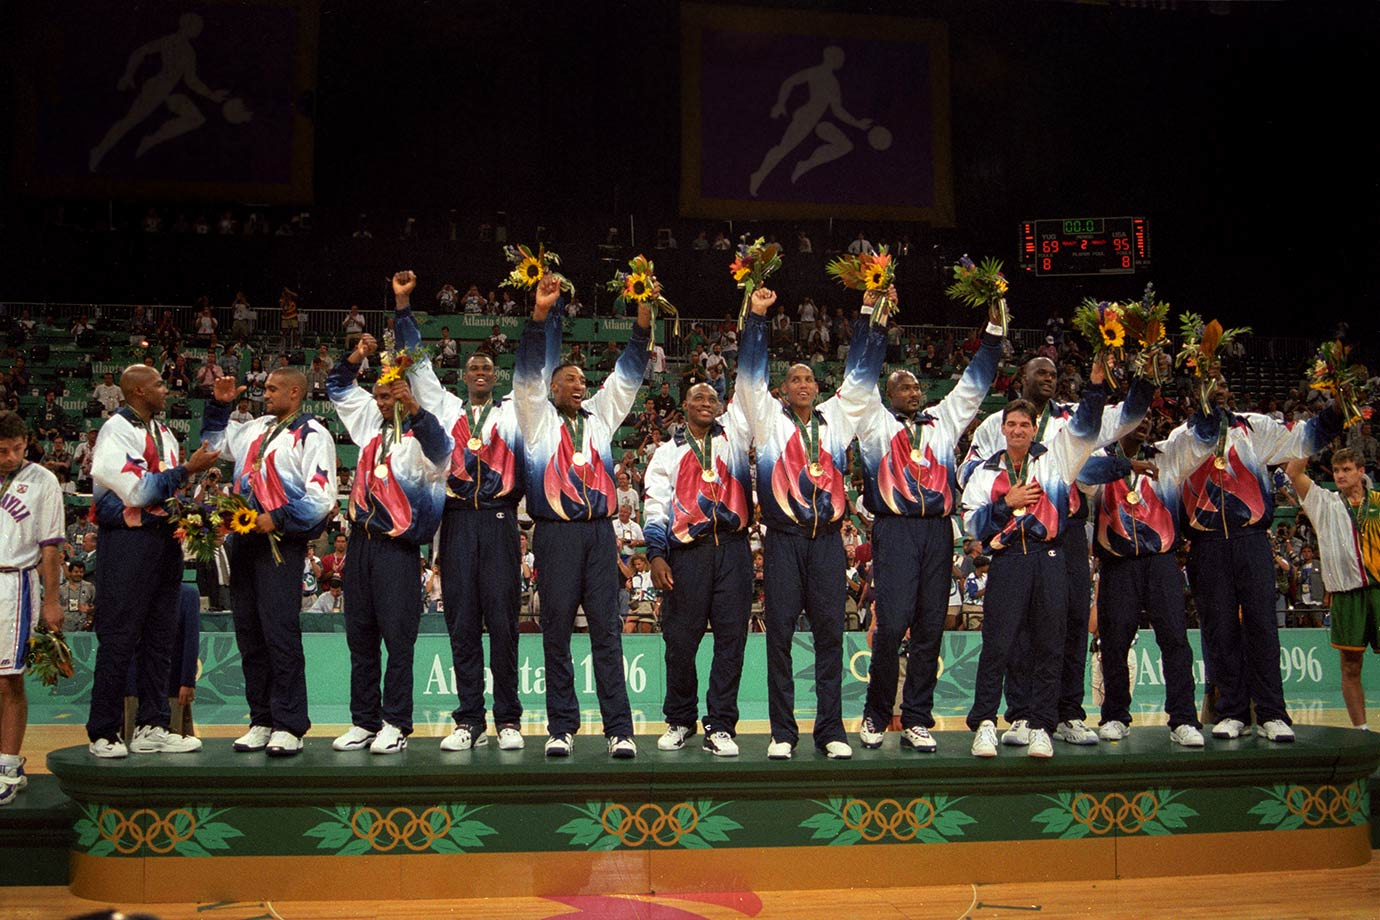 August 3, 1996 — Summer Olympics, Gold Medal ceremony